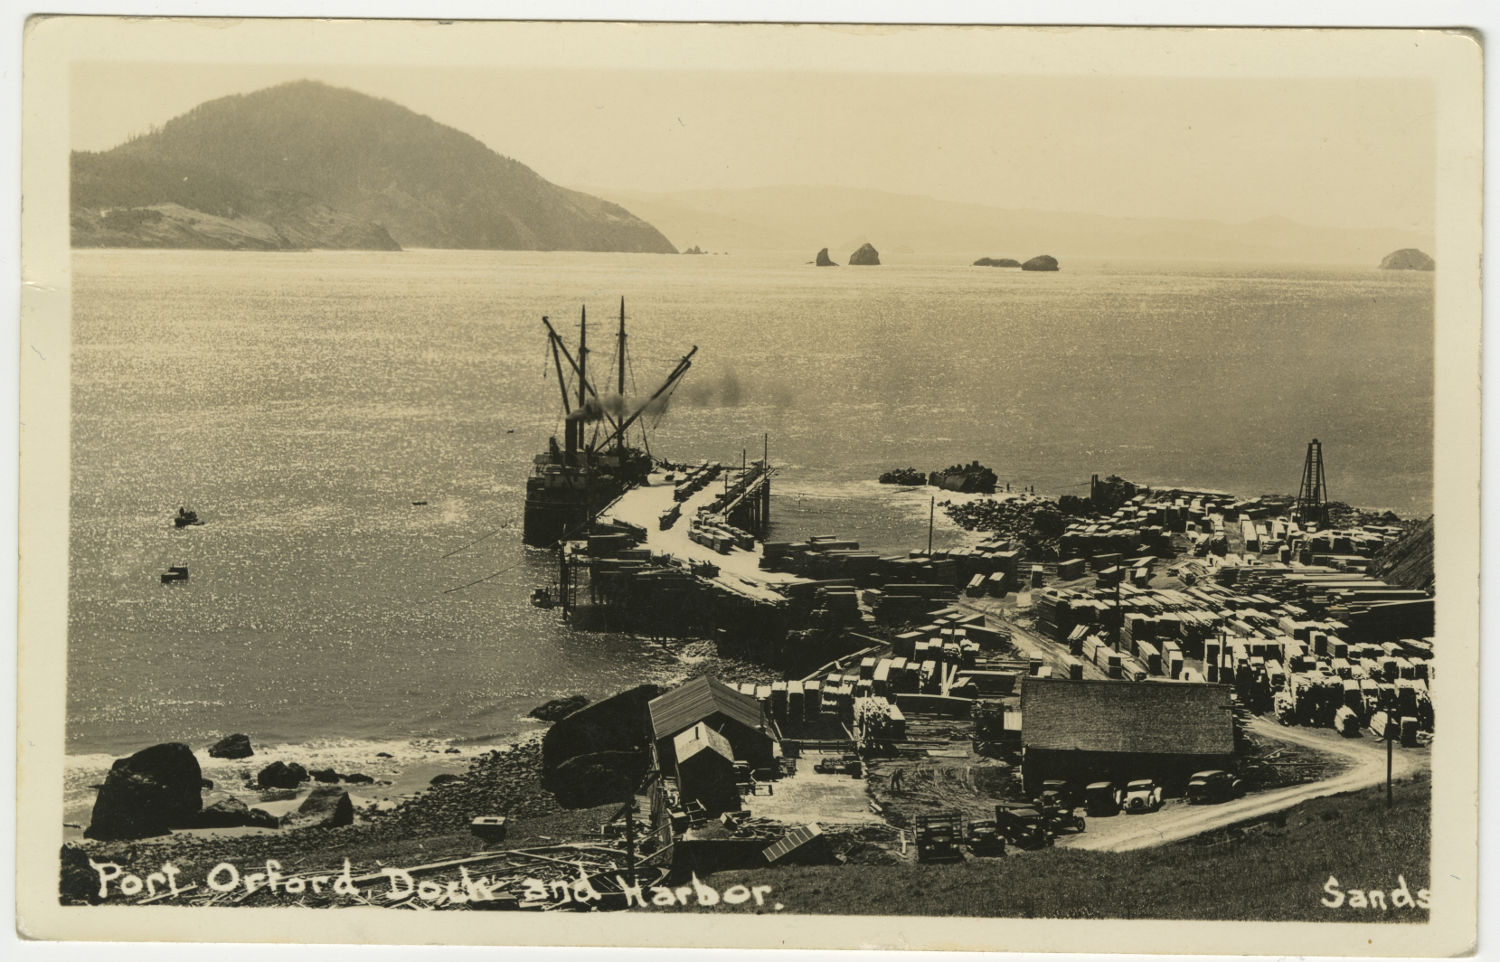 Port Orford Dock and Harbor - Sands